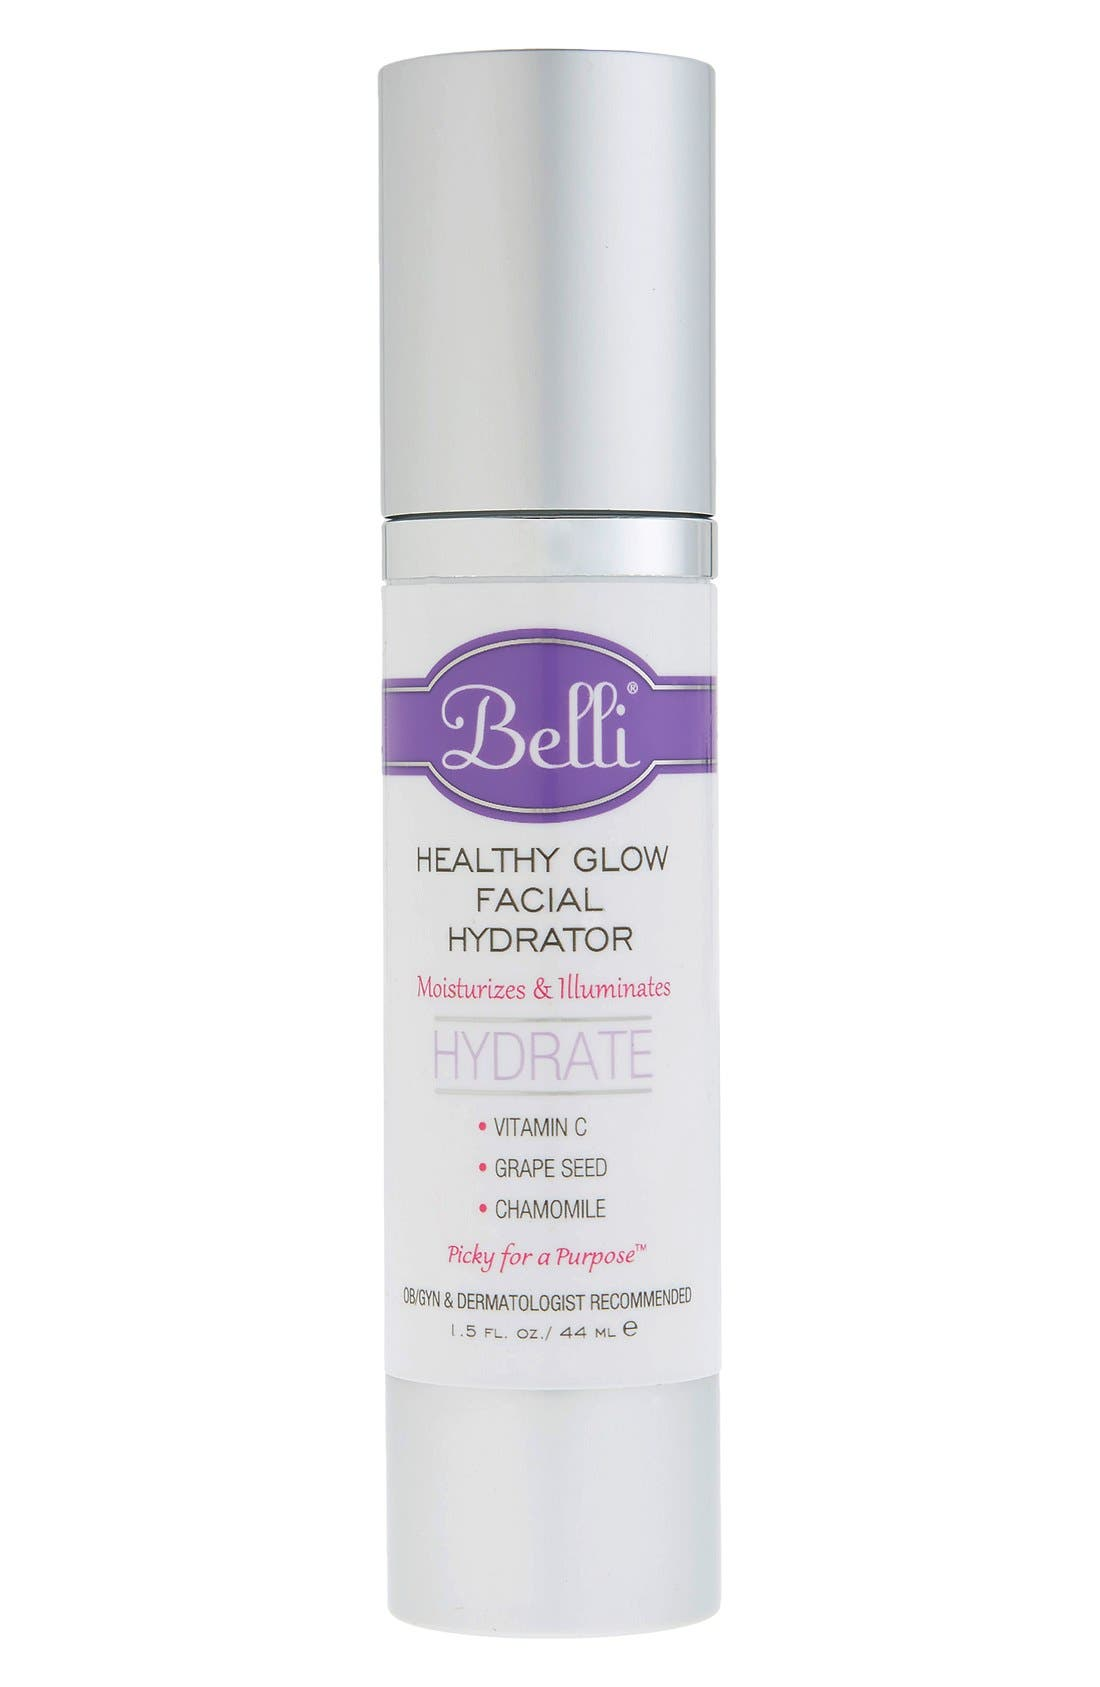 Belli Skincare Maternity 'Healthy Glow Facial Hydrator' Lightweight Moisturizer